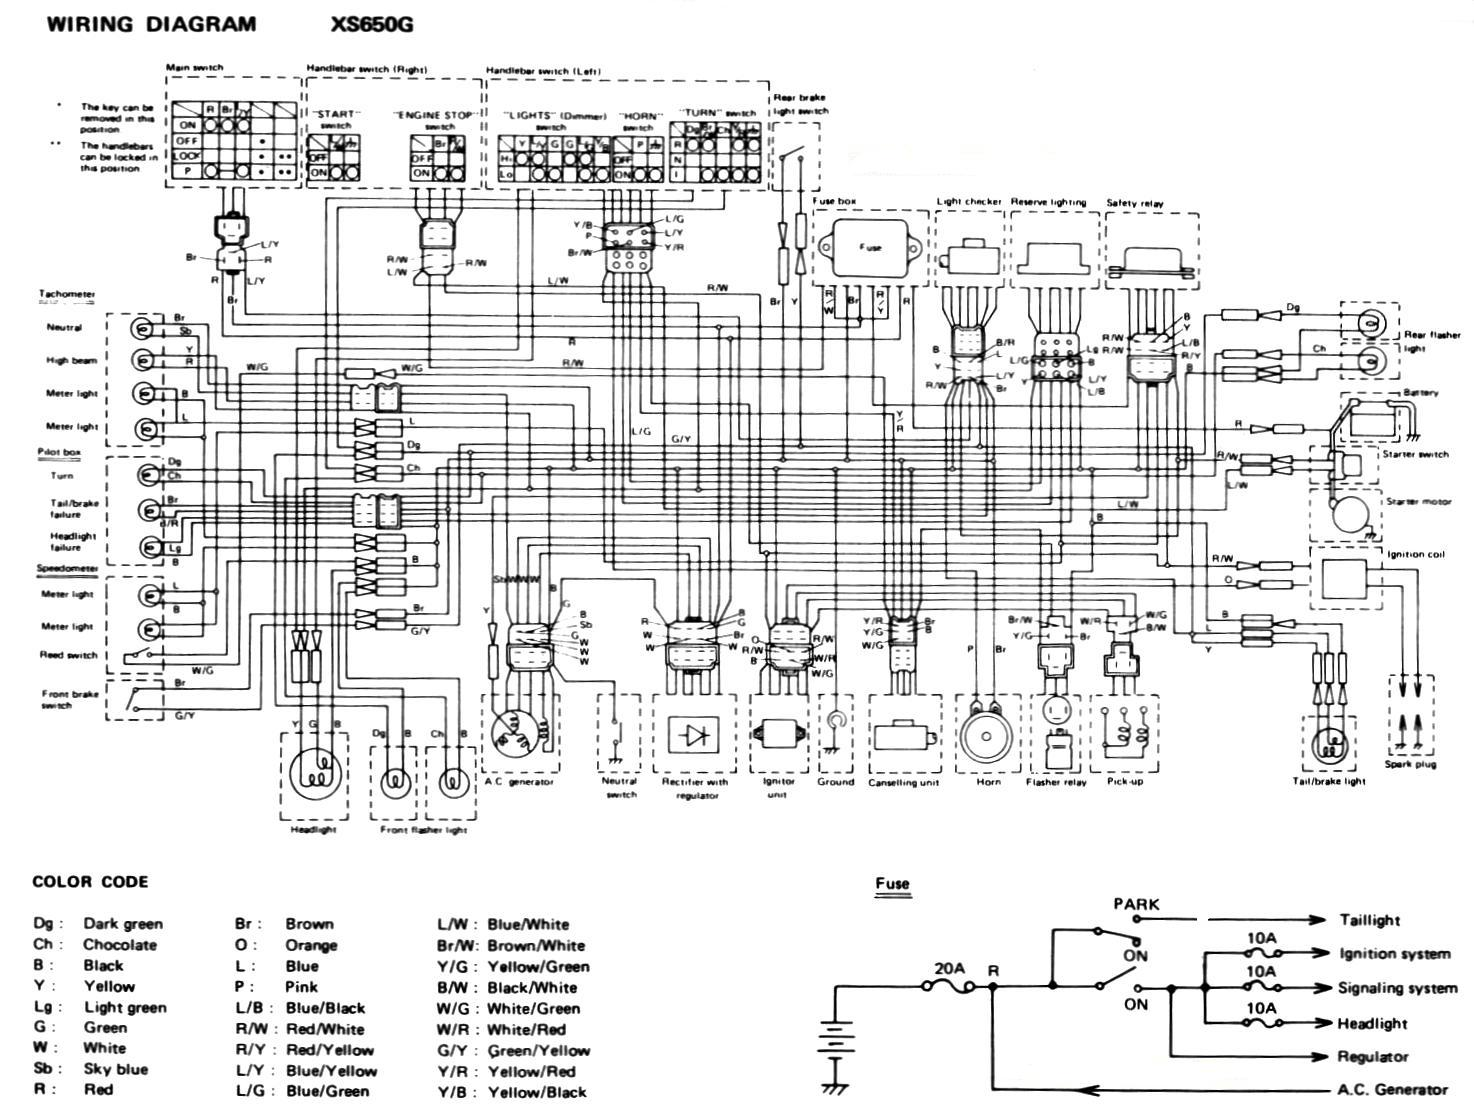 80XS650G wiring diagrams 1975 xs650 wiring diagram at n-0.co